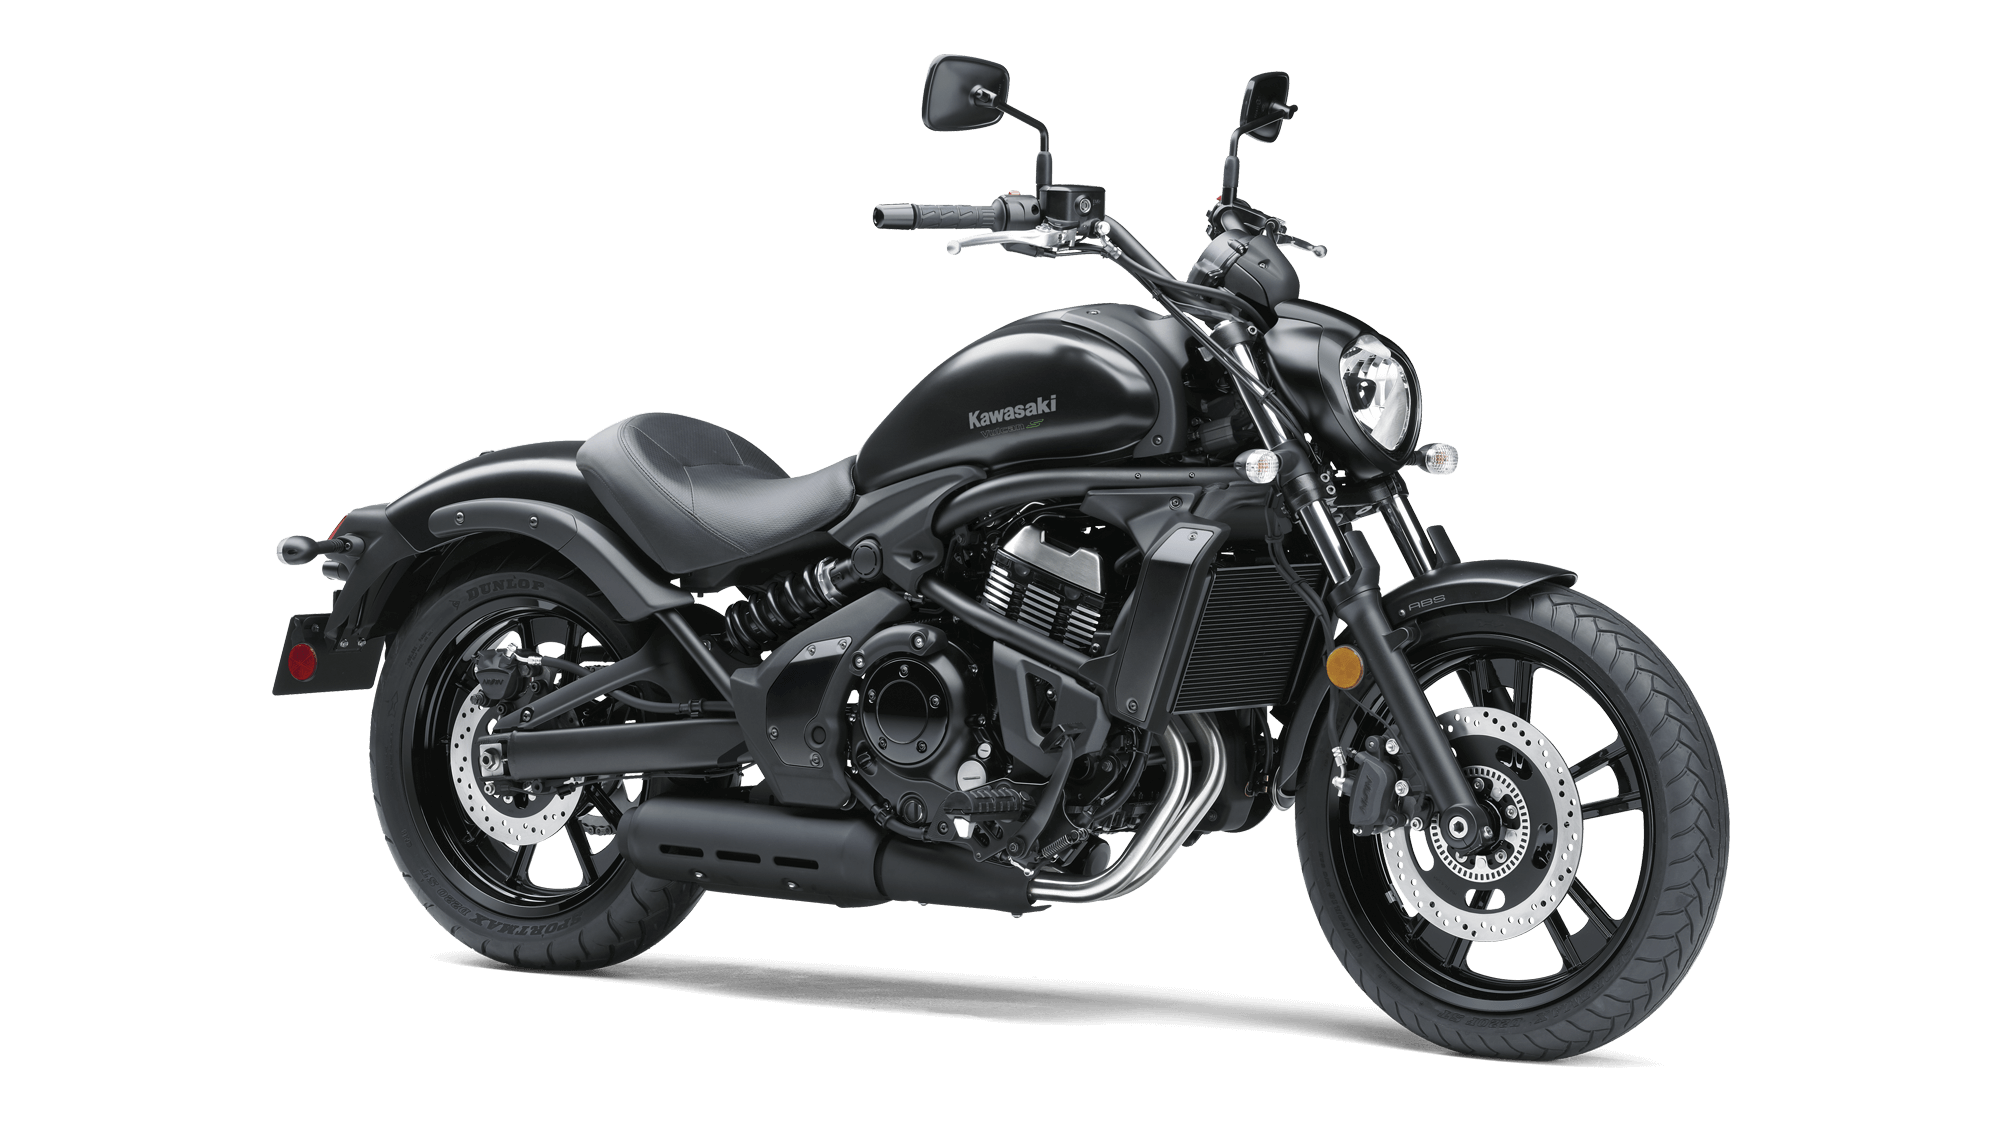 Take a look at the aesthetics of the black beauty Kawasaki Vulcan S